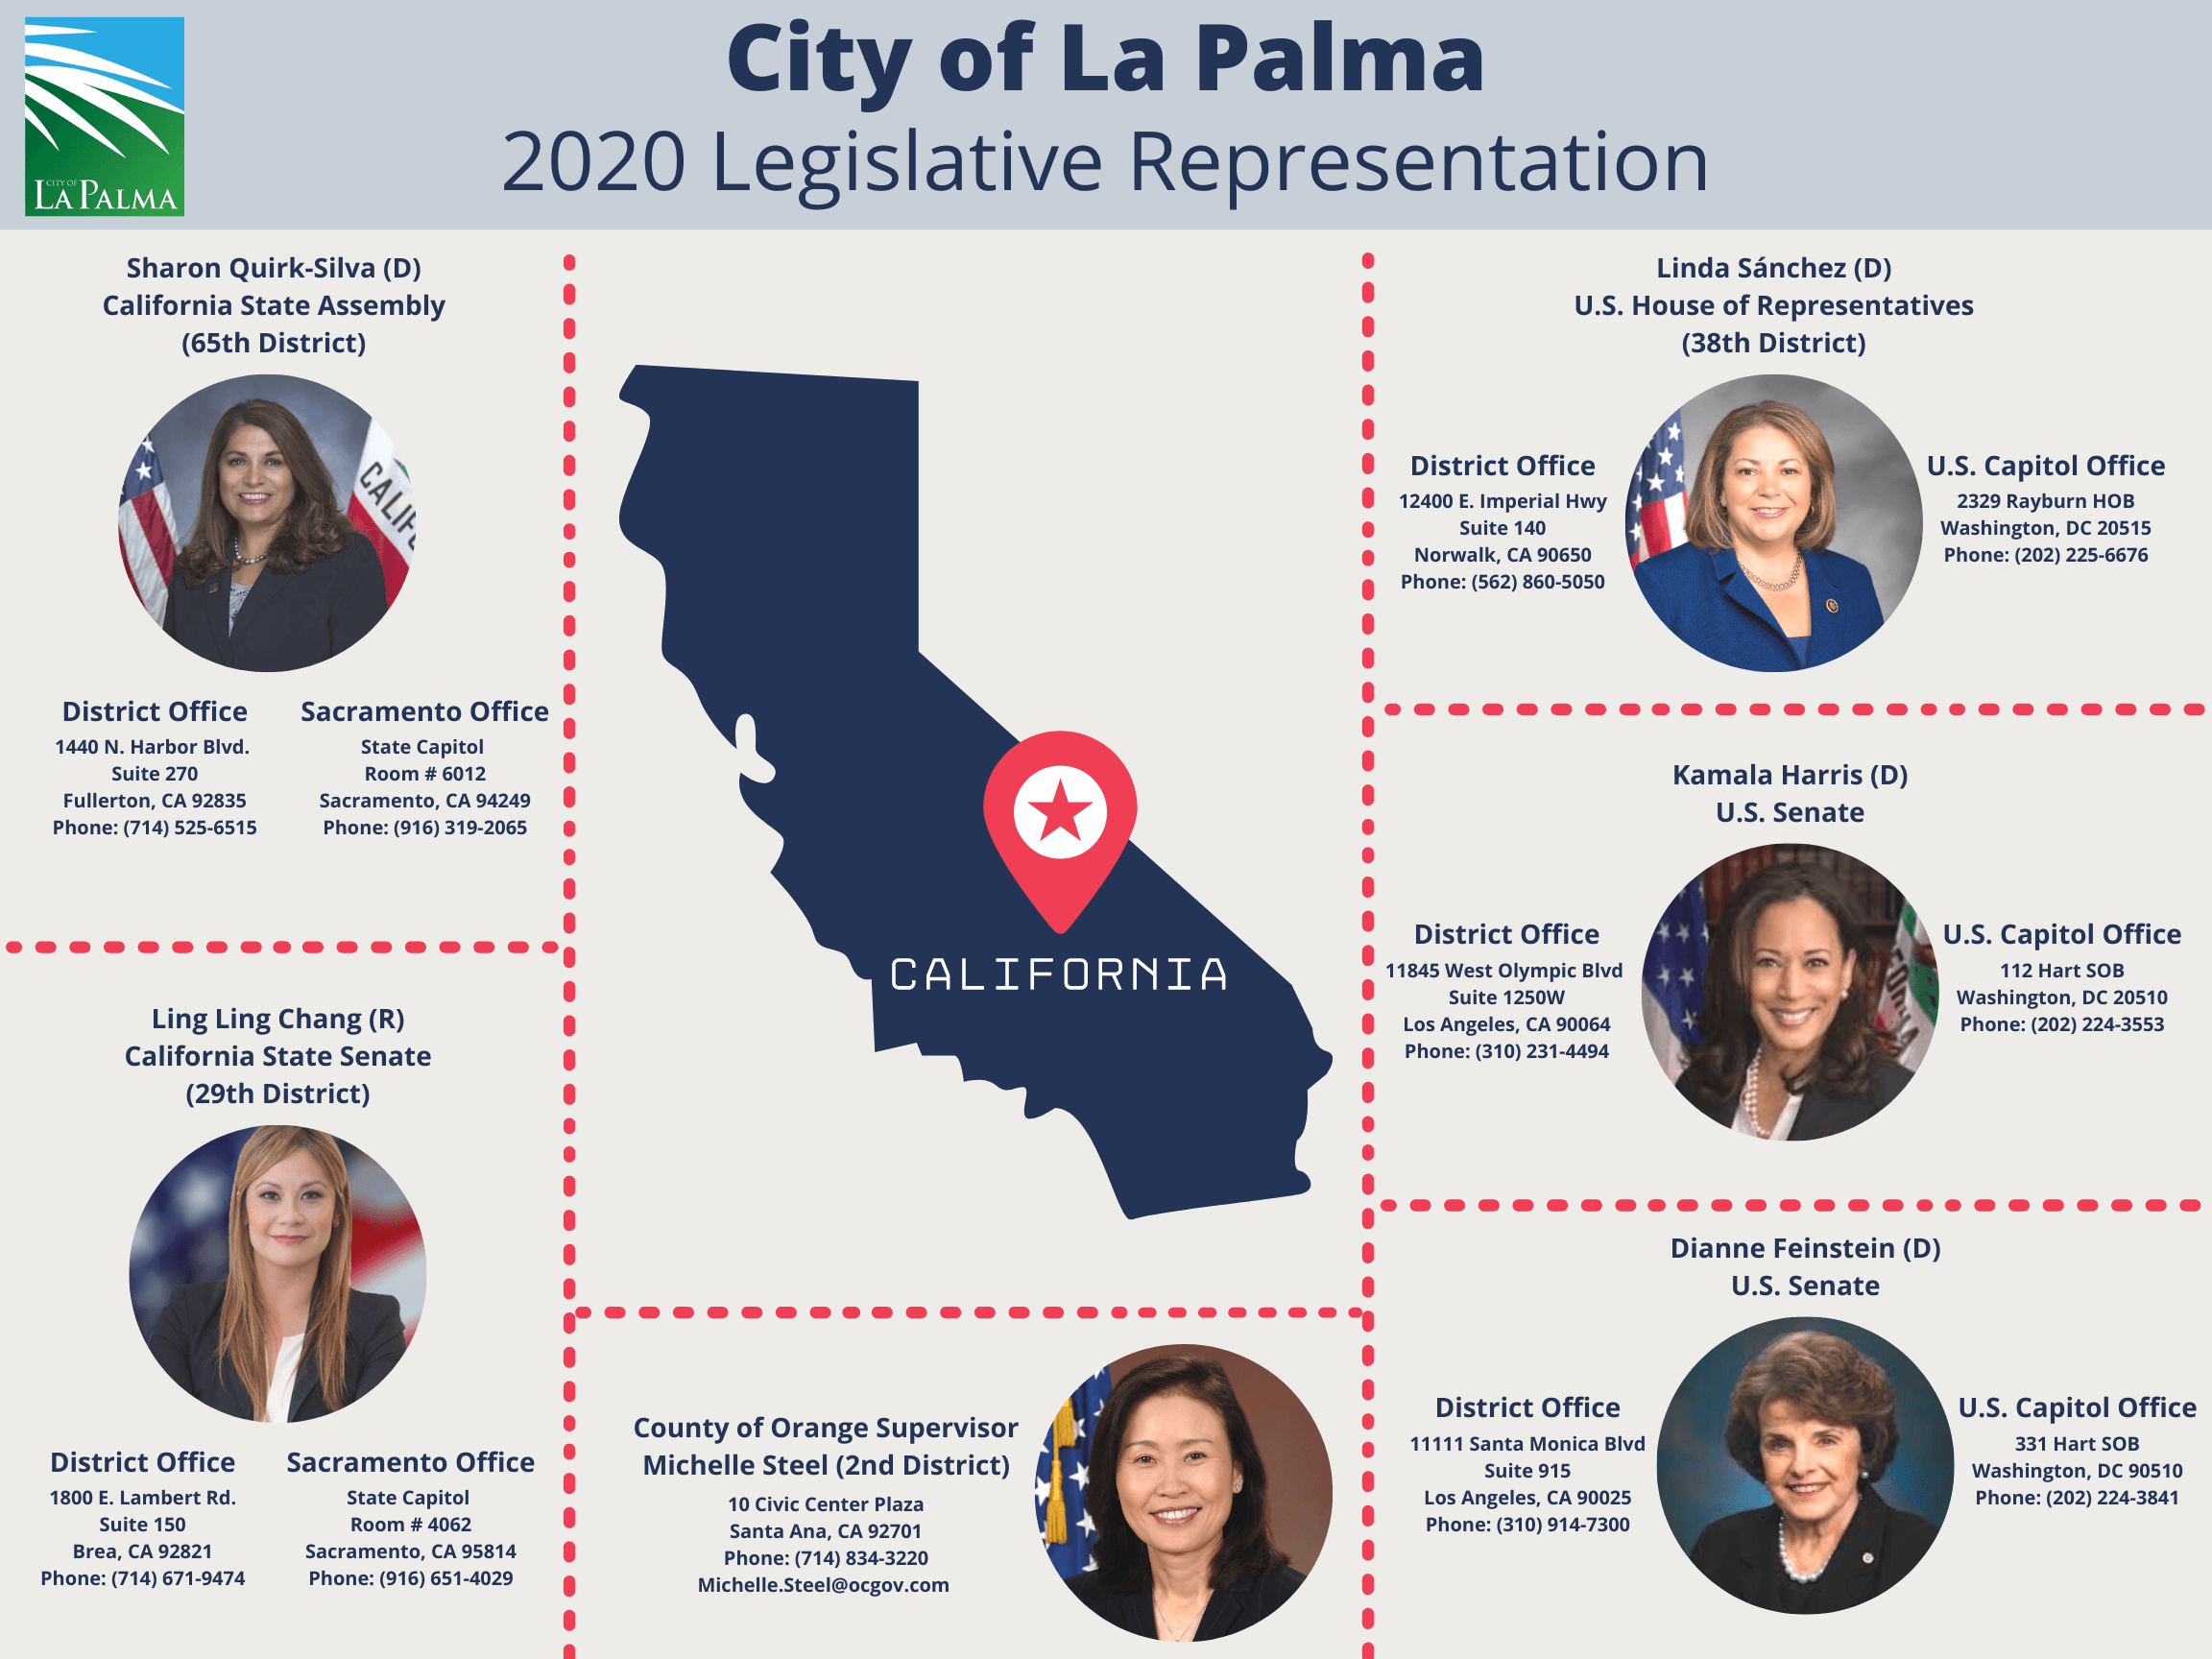 City of La Palma 2020 Legislative Representatives